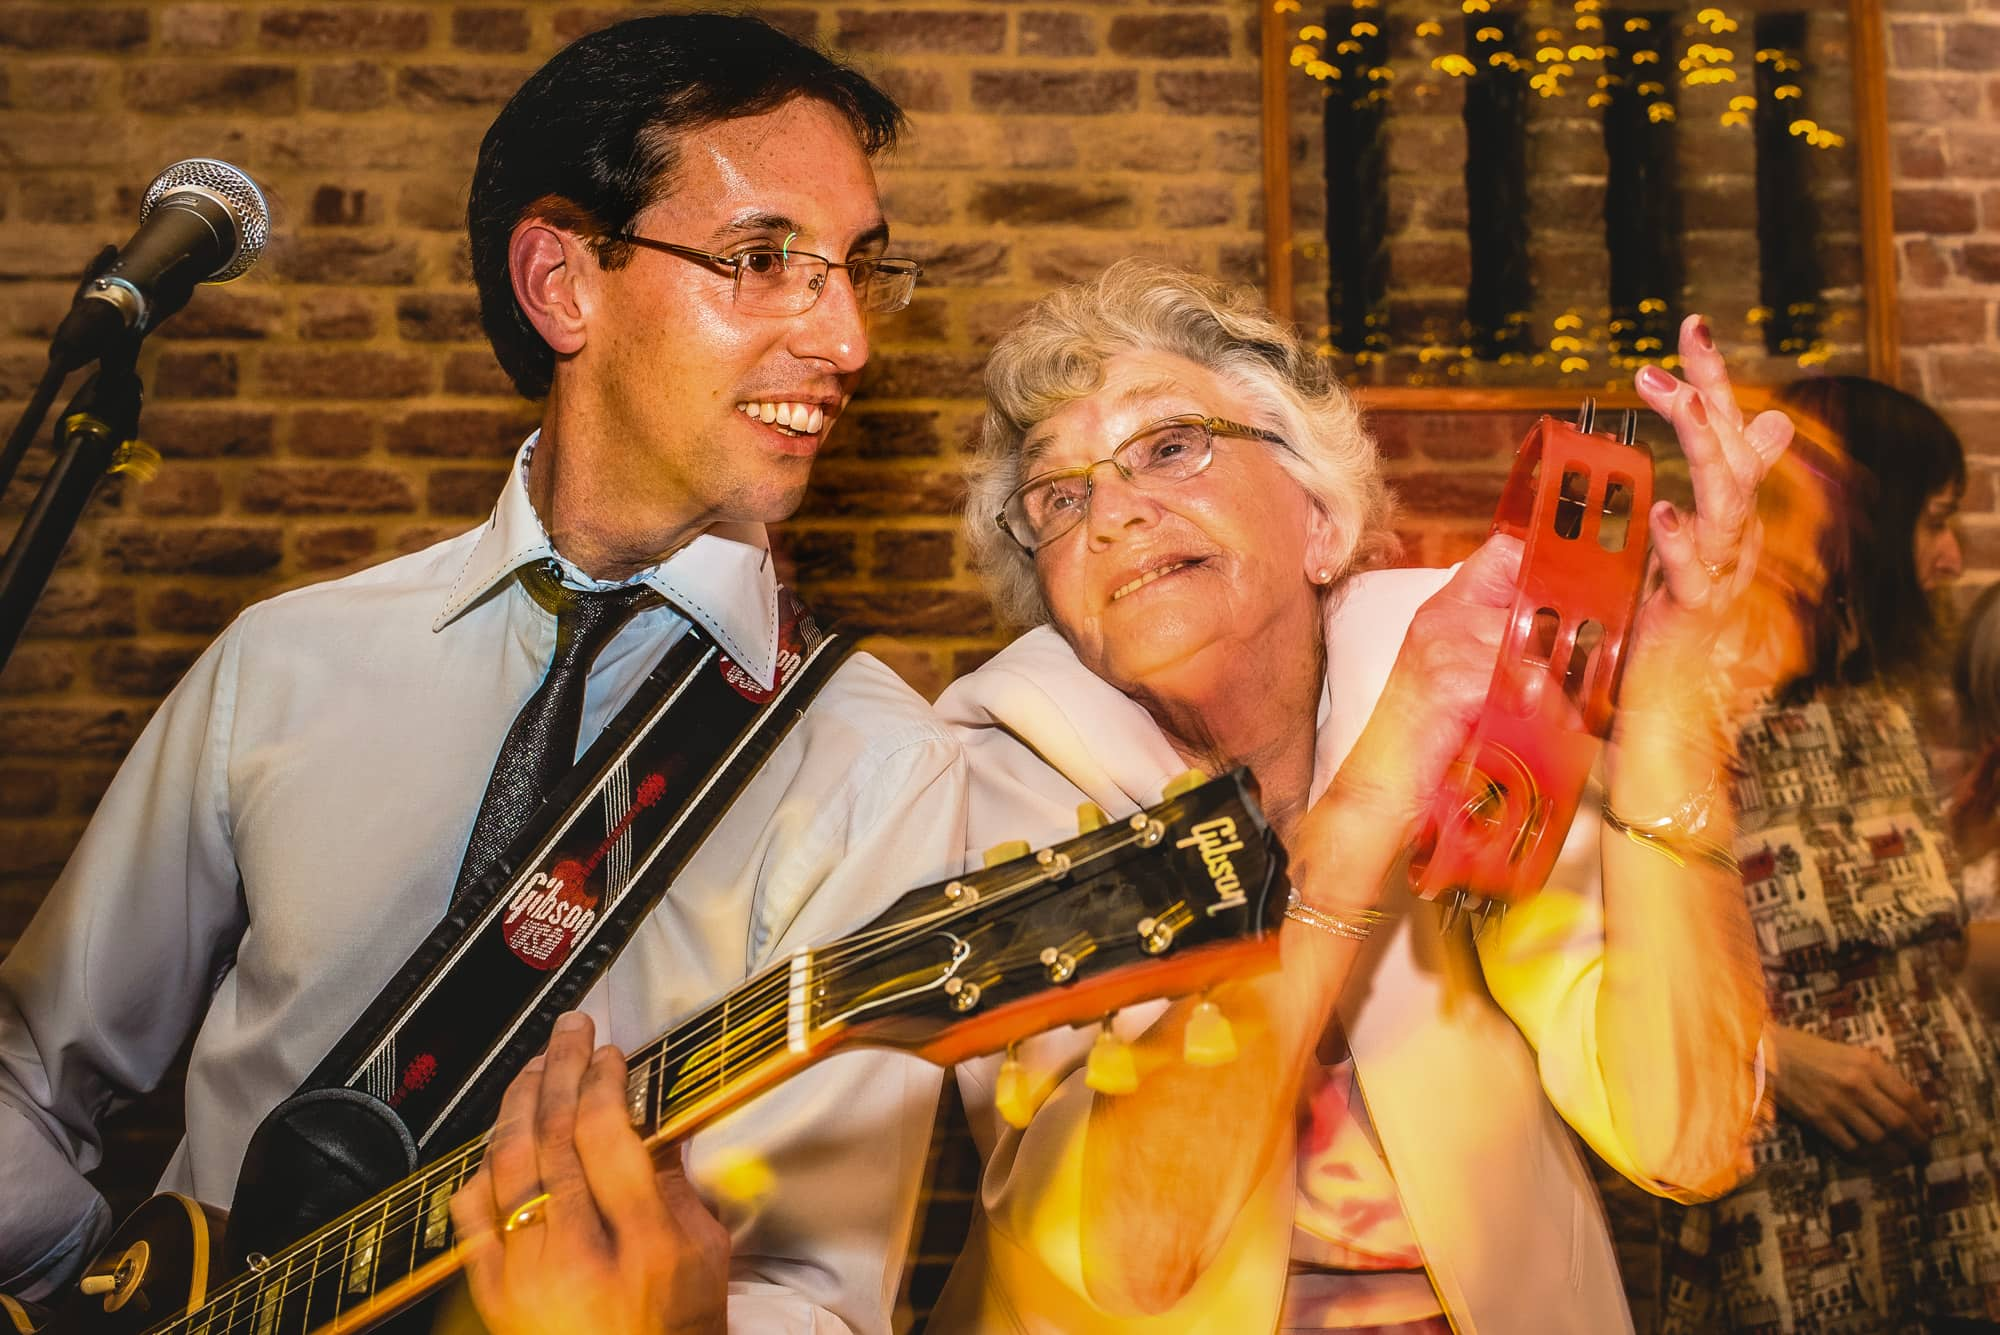 Groom's Nan joins the band onstage at wedding reception in Cambridge